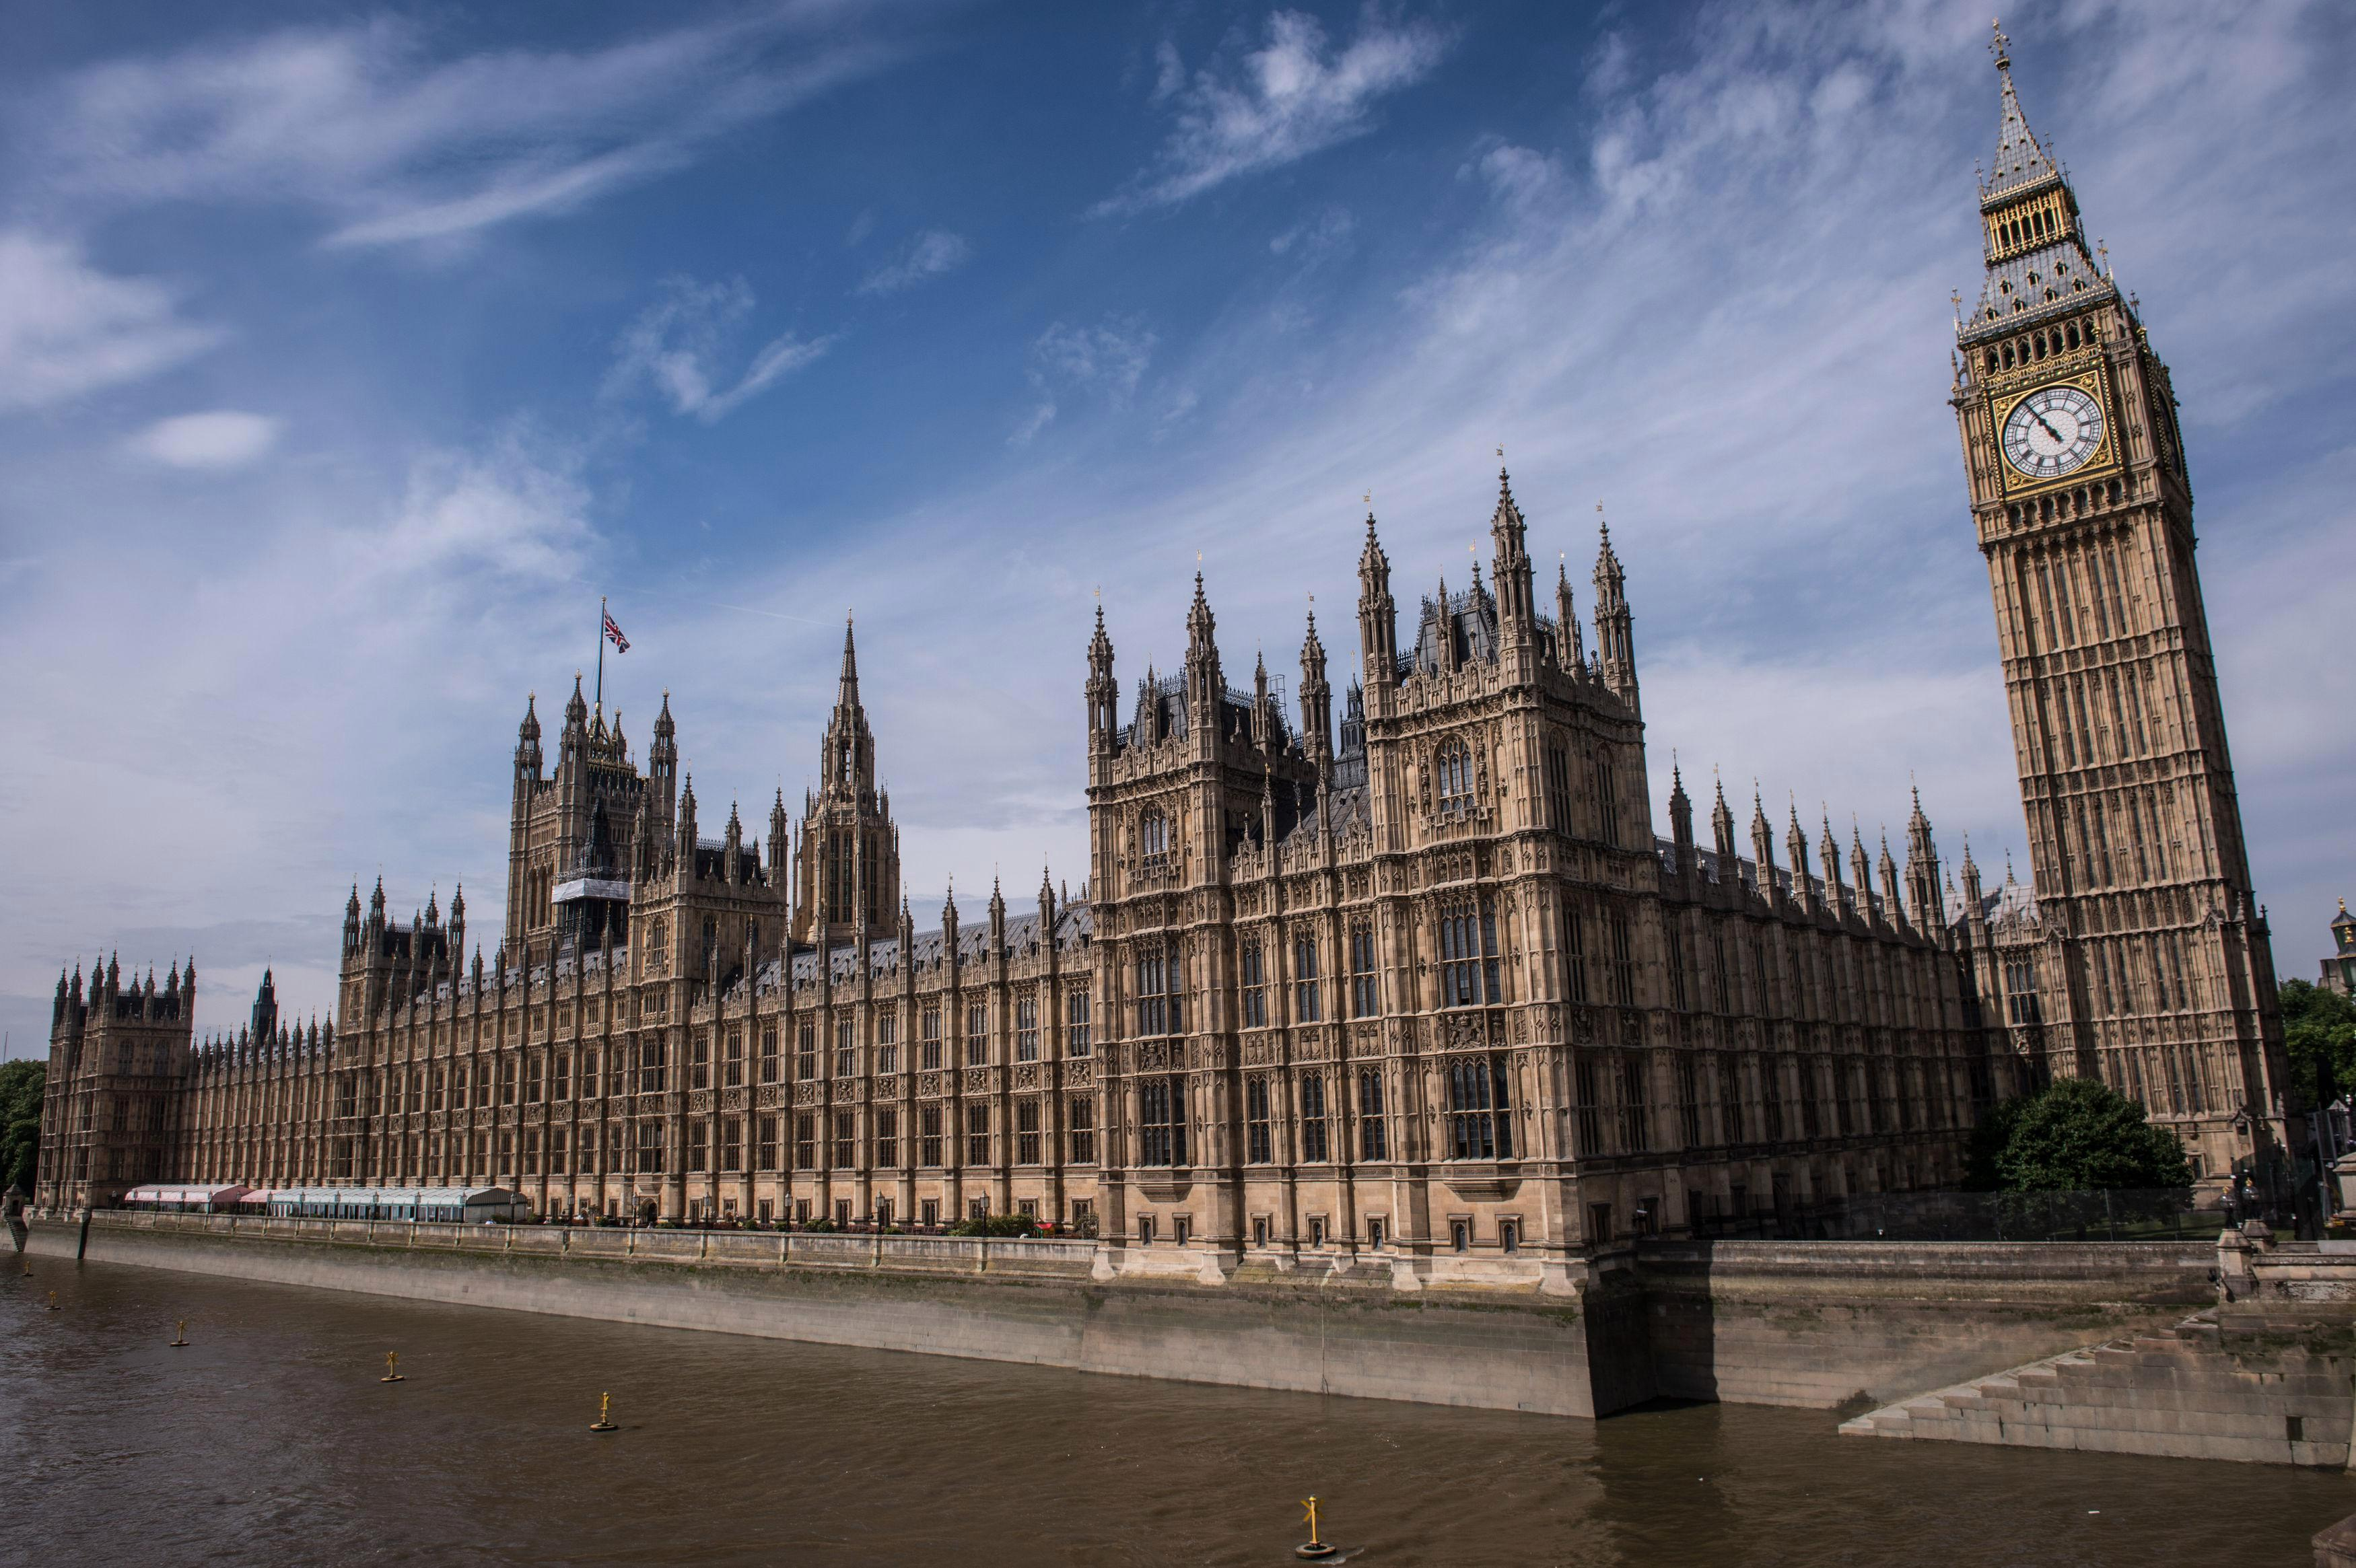 Four MP aides say they've been sexually assaulted at Westminster as staff admit they don't speak out about bullying because of 'masculine' culture